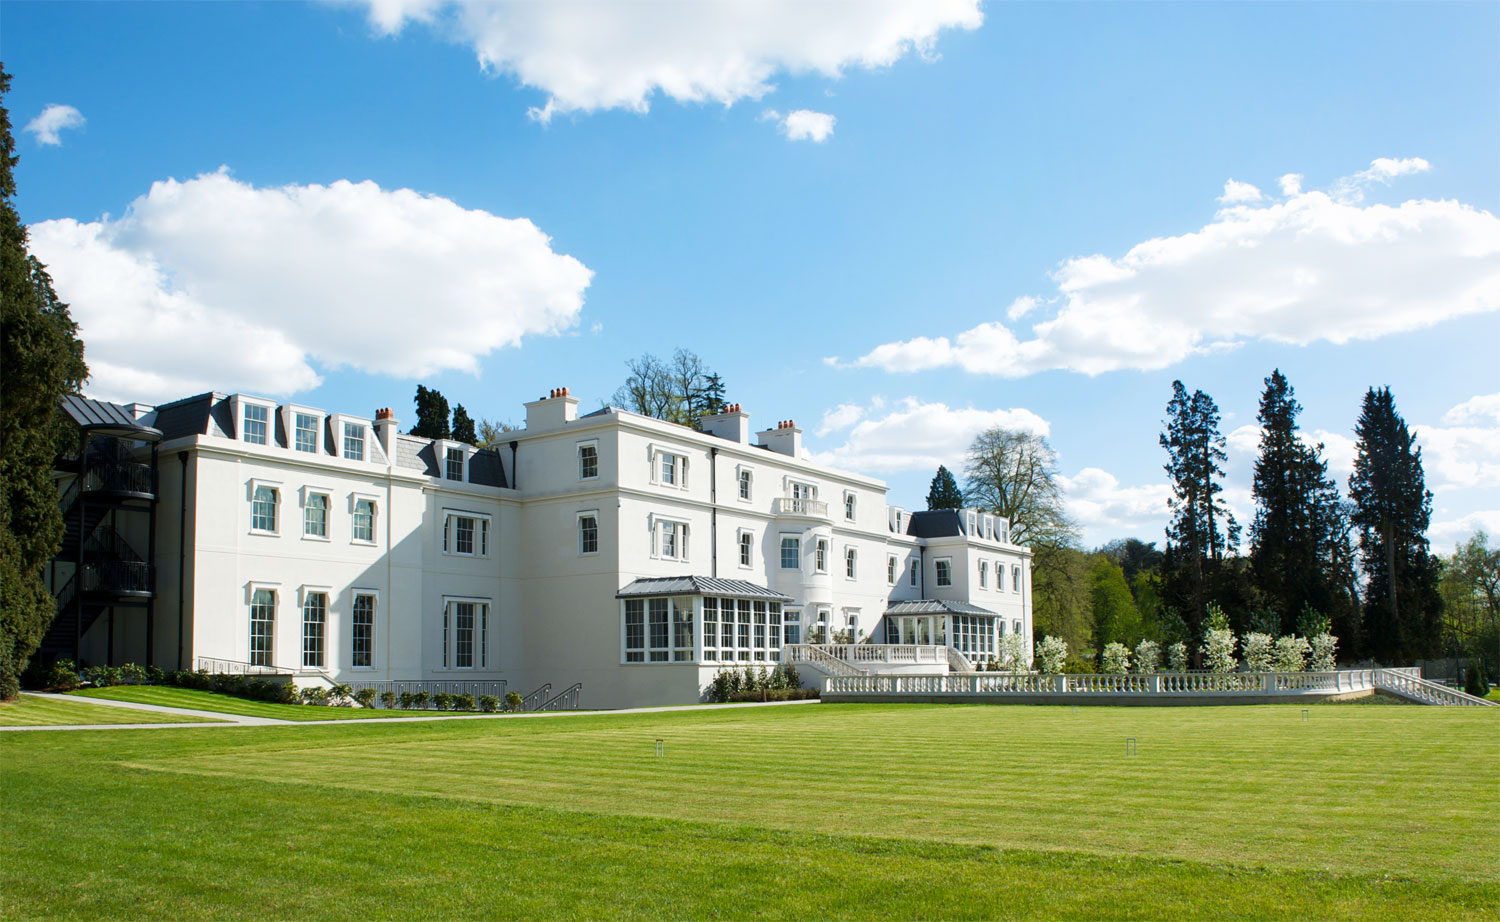 The stunning exterior of Coworth Park